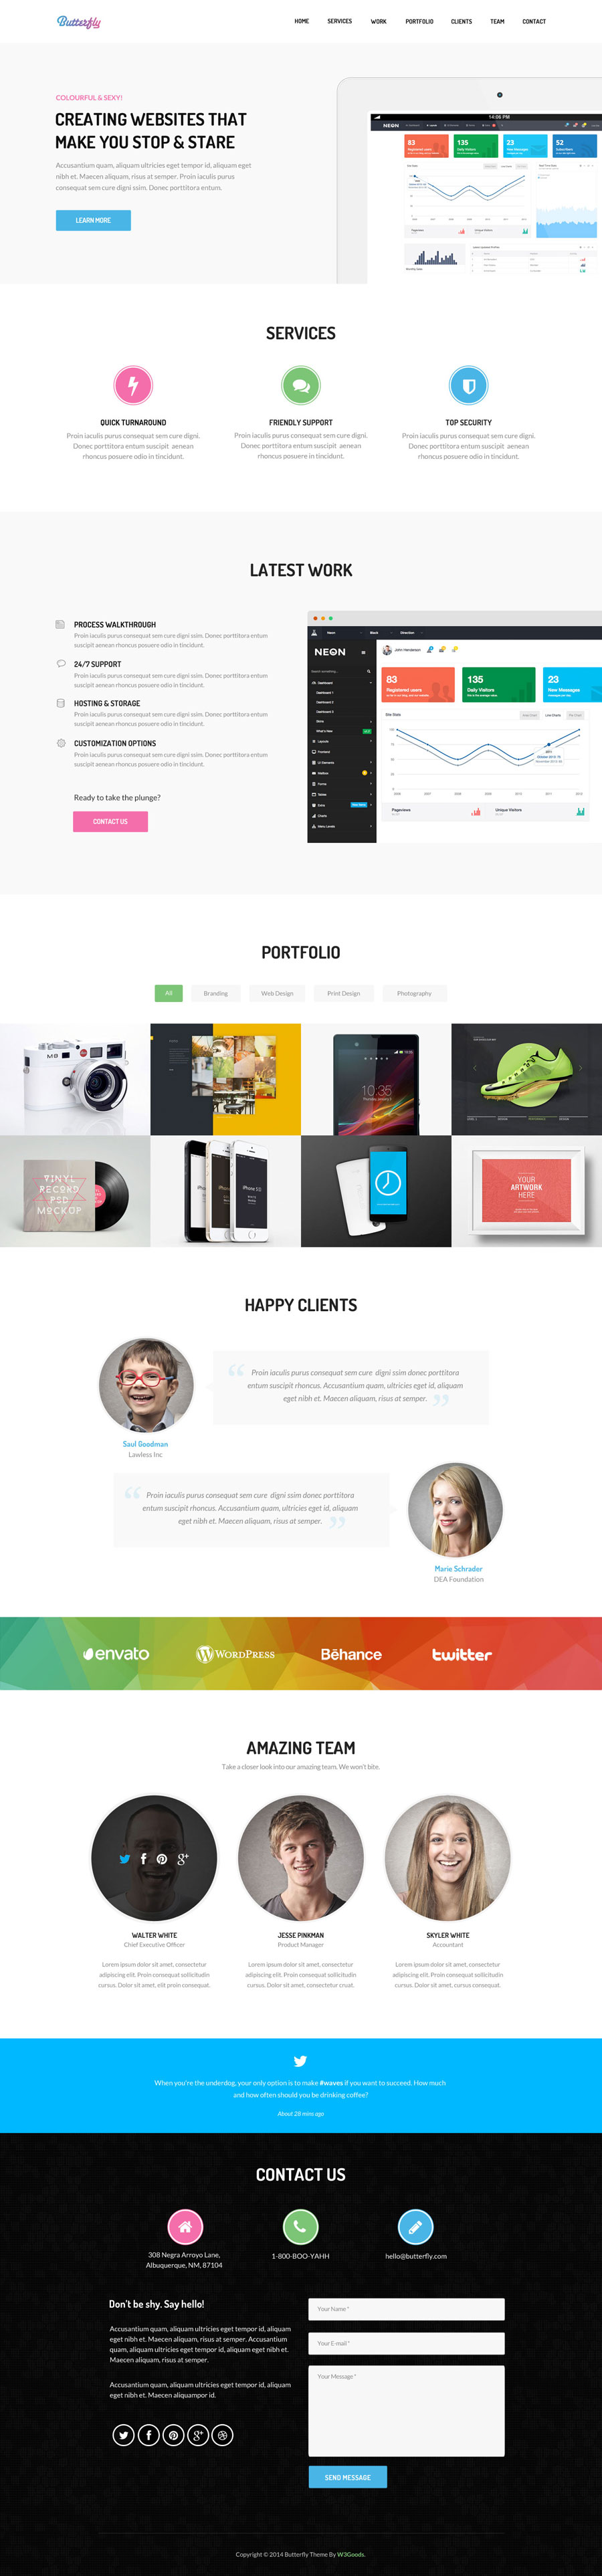 Butterfly Free Bootstrap Theme Ressources Photoshop Theme